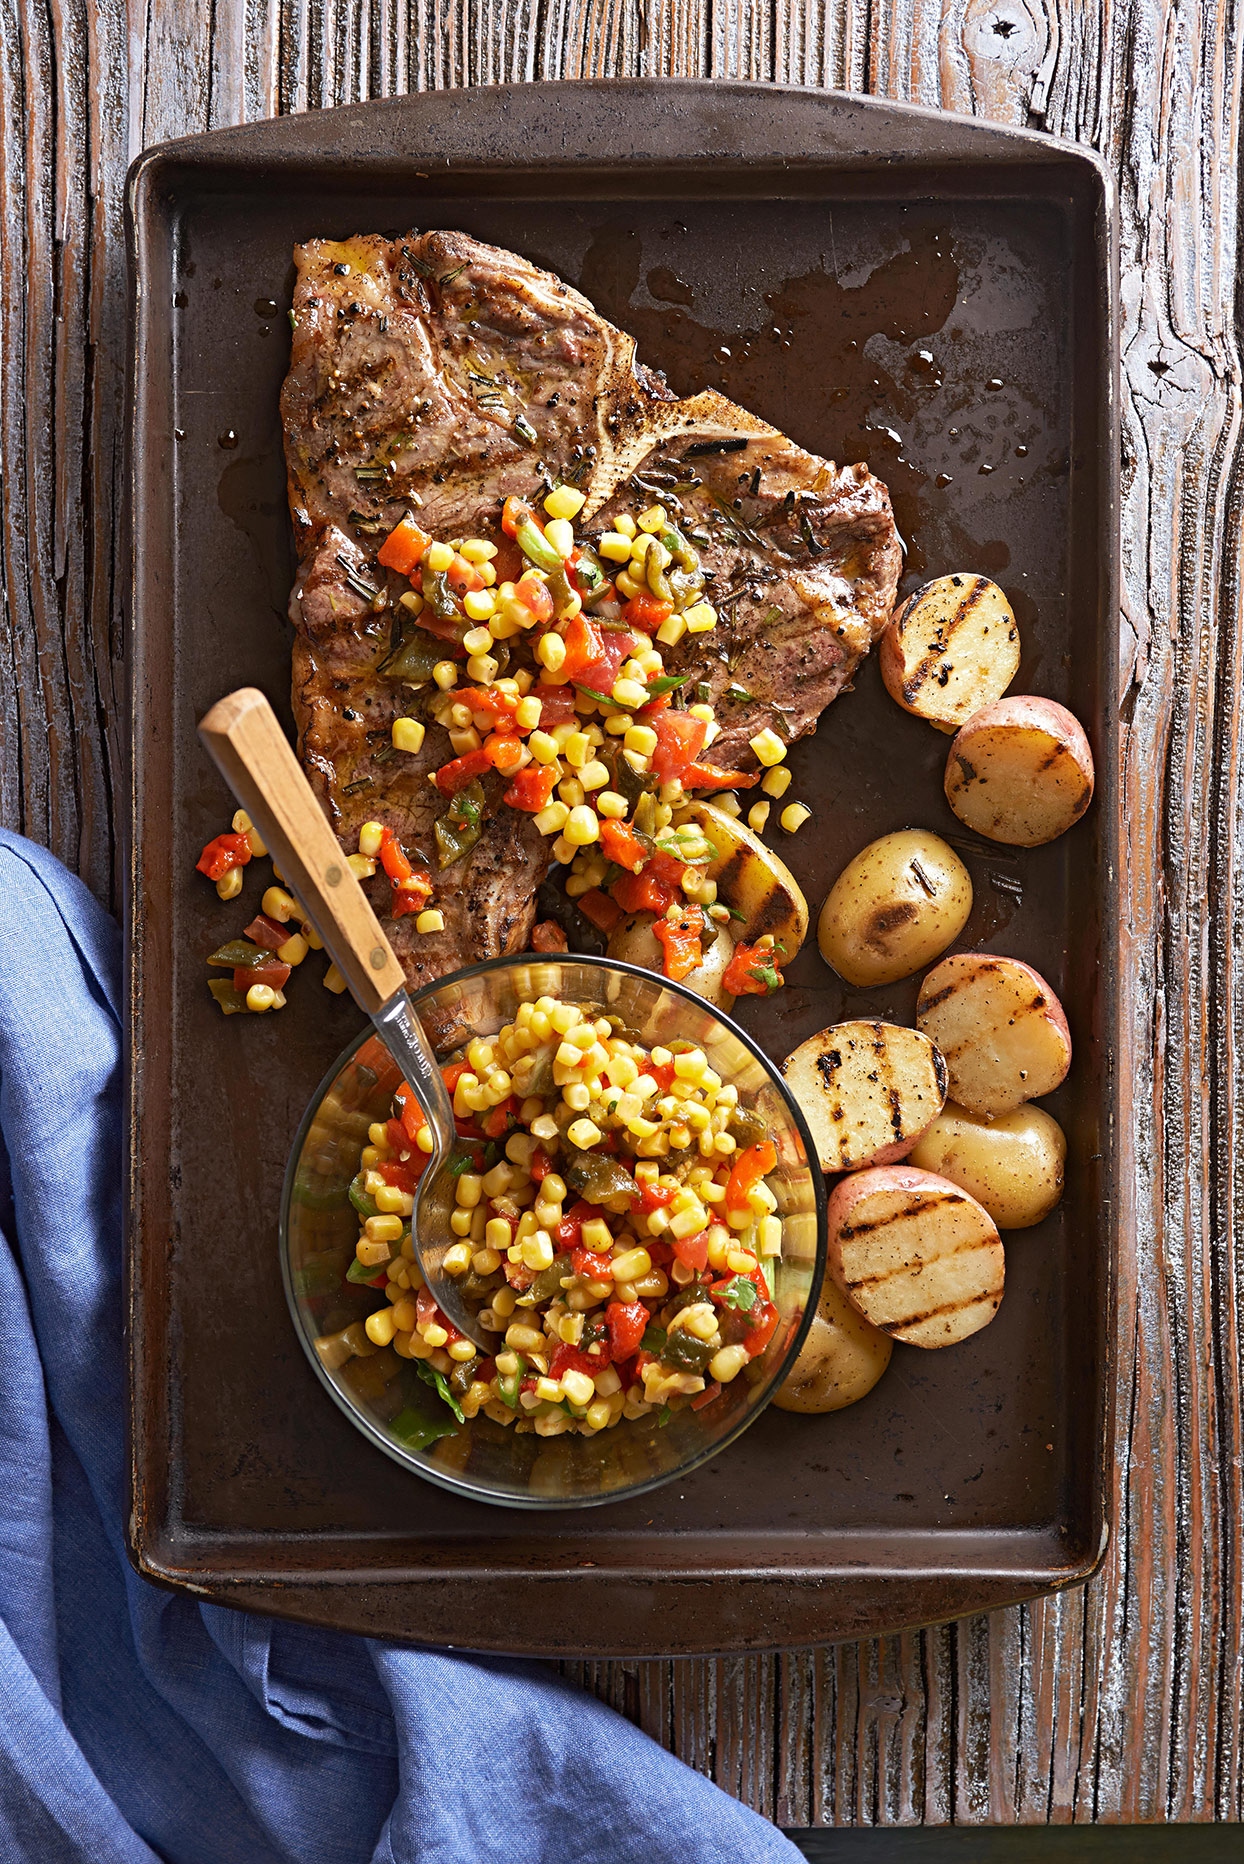 Corn and Roasted Pepper Relish in bowl and on steak